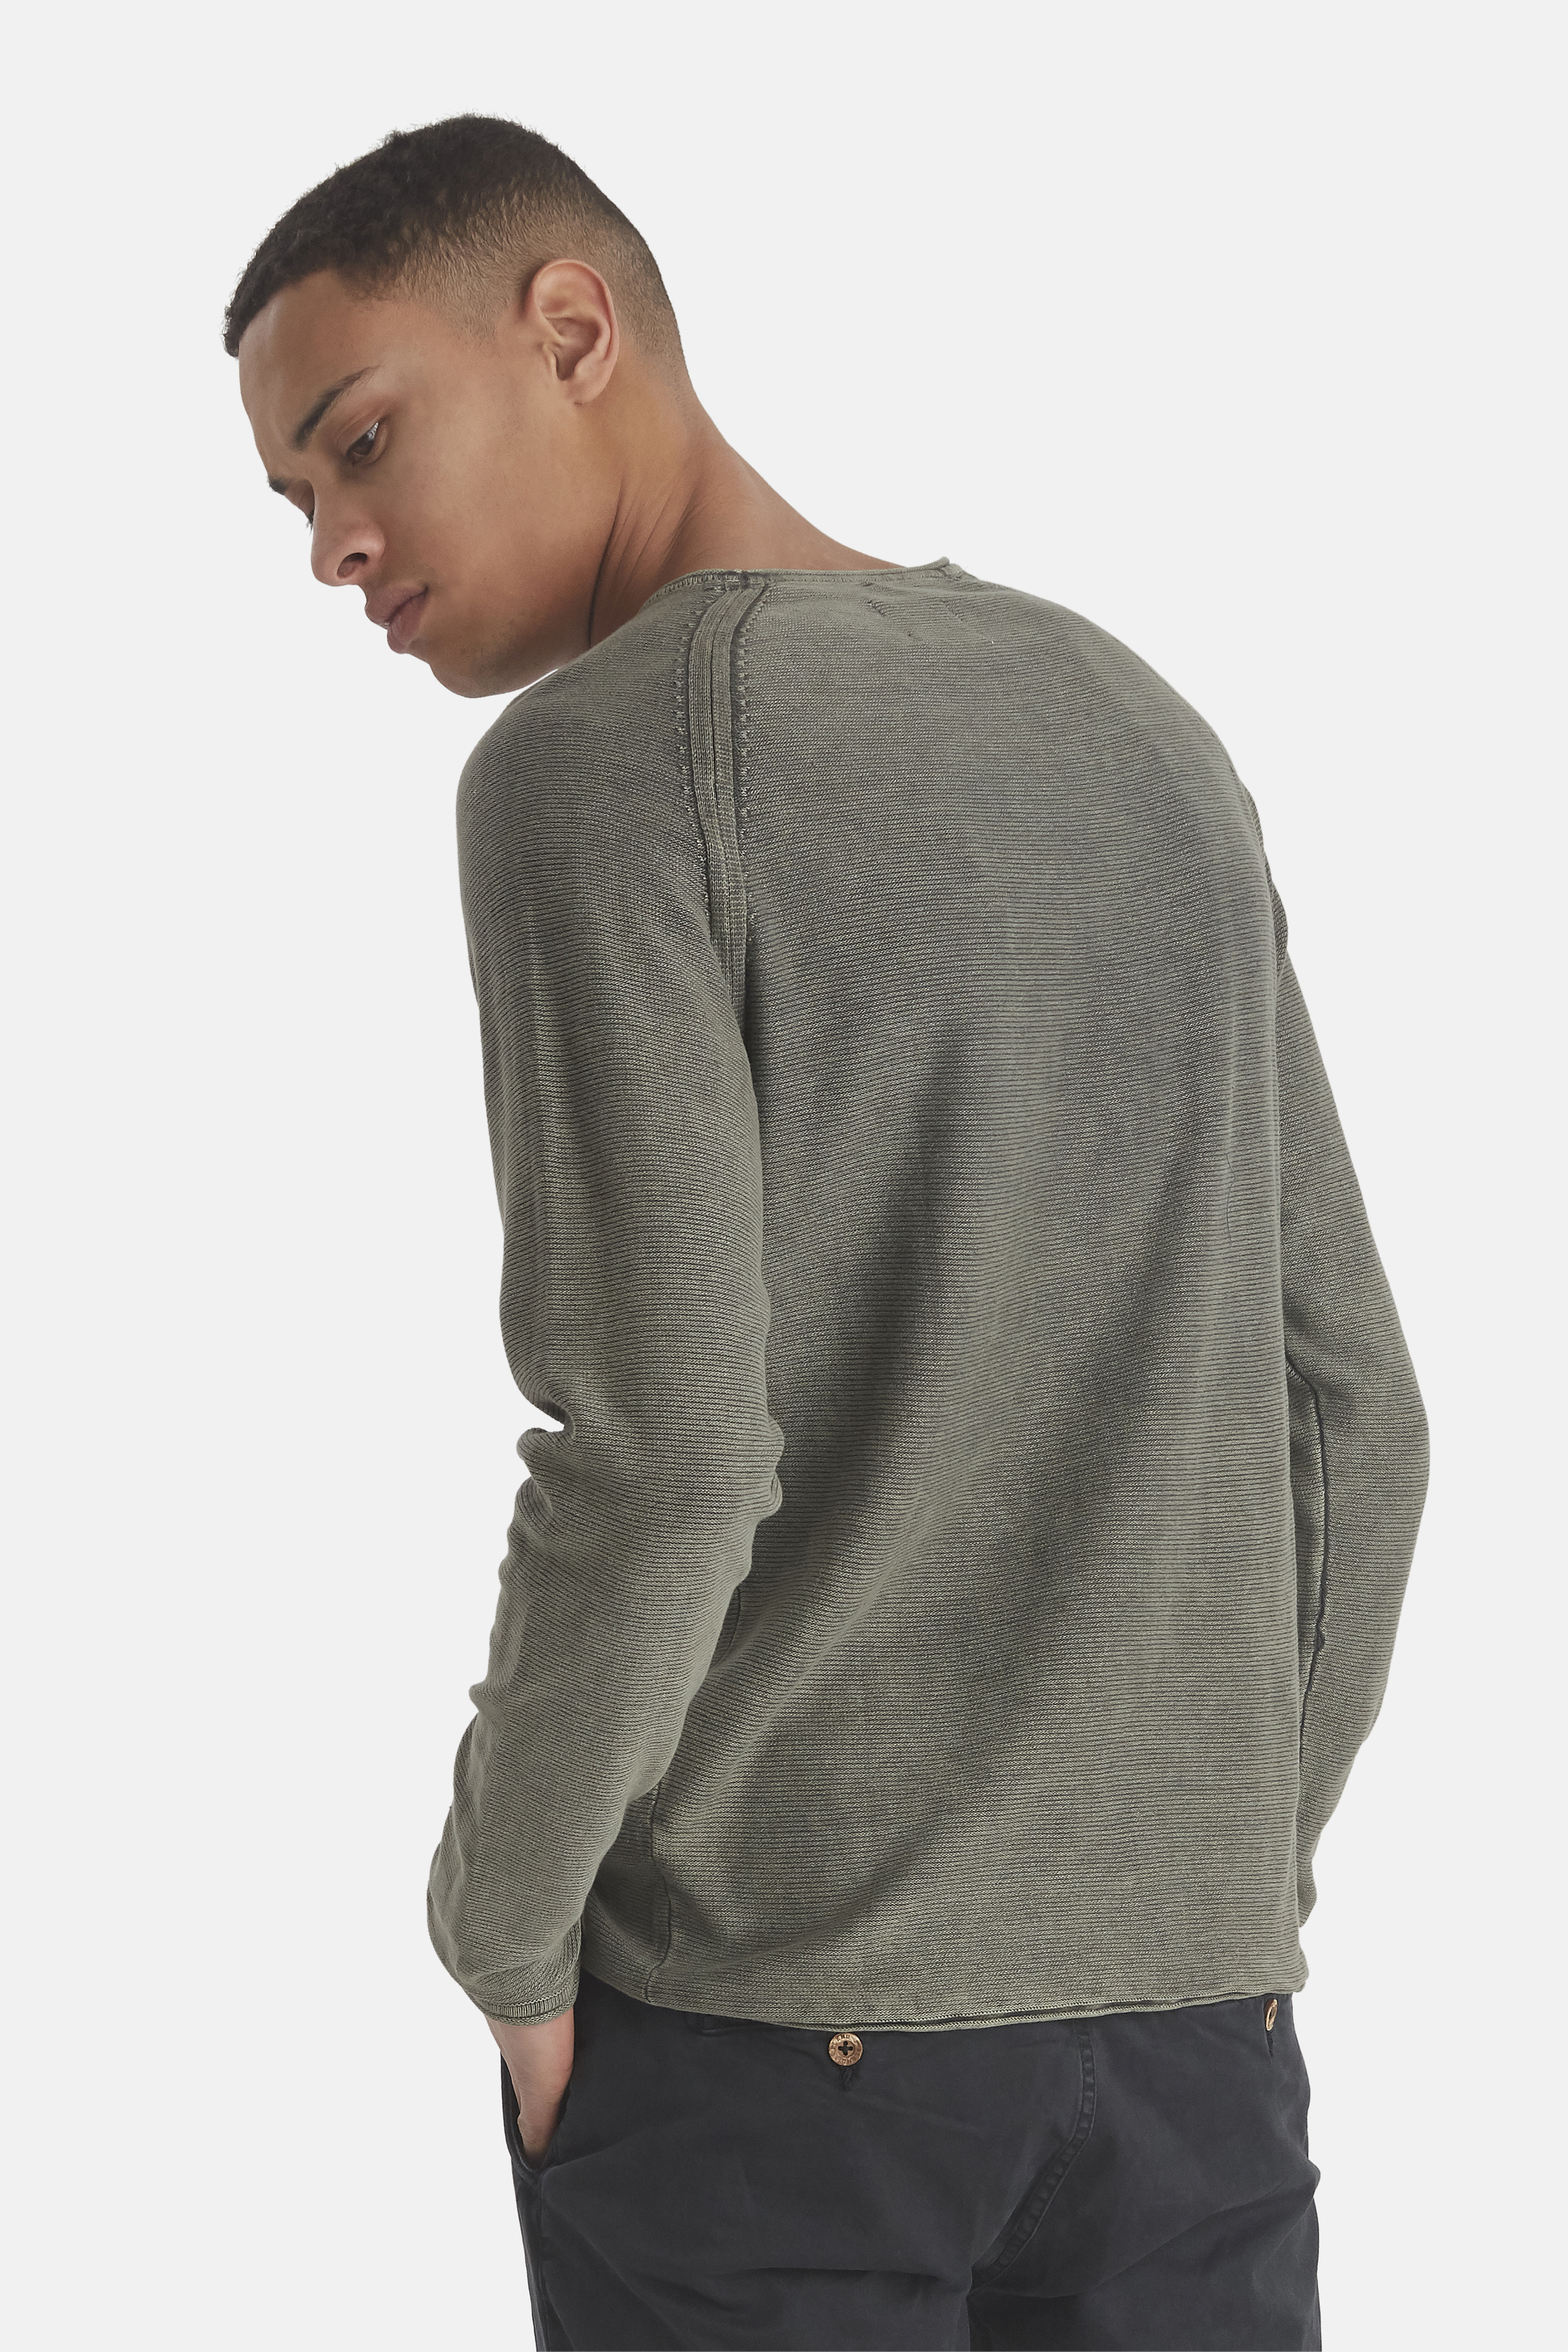 Beetle Green Knitted pullover fra Blend He – Køb Beetle Green Knitted pullover fra str. S-3XL her